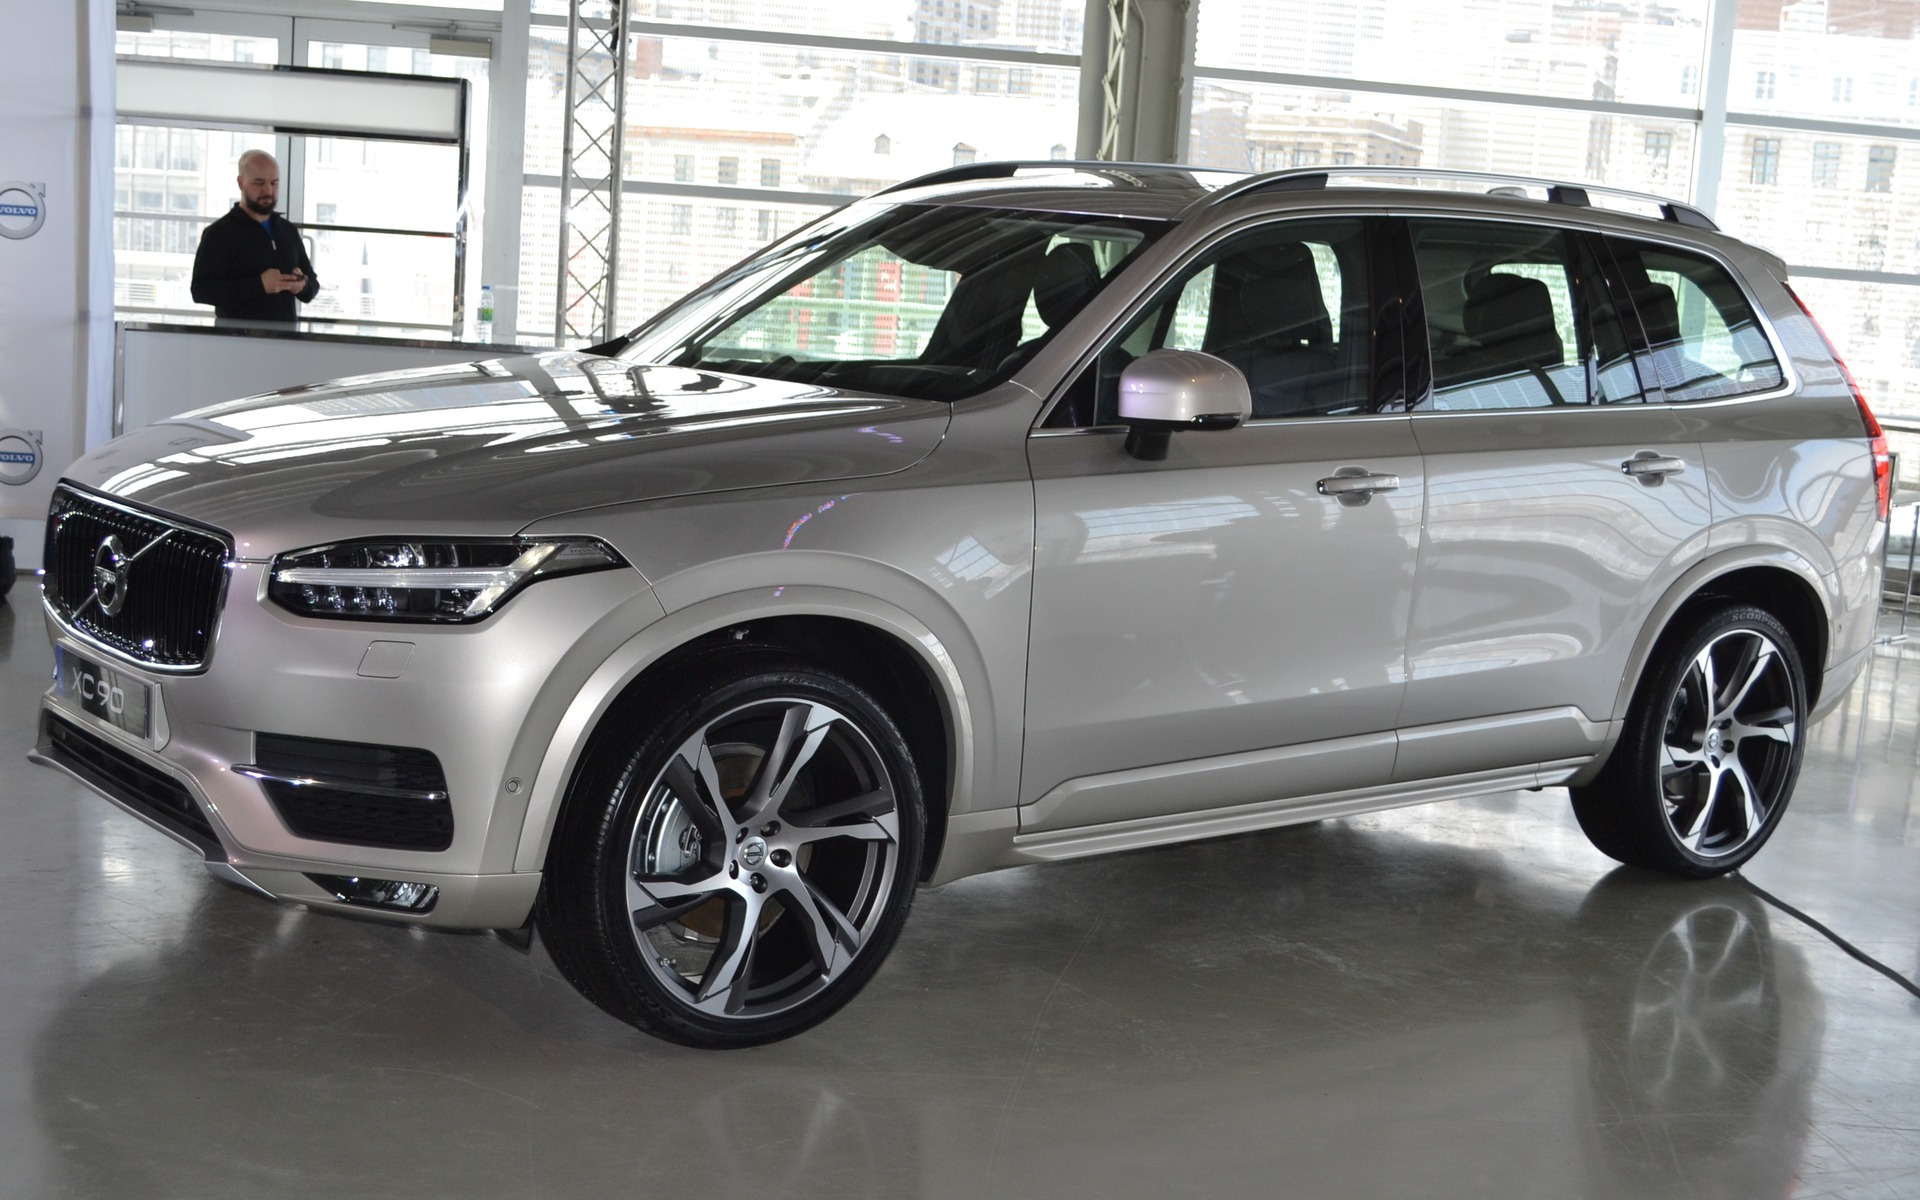 New Models Volvo Introduces The New 2016 Xc90 And V60